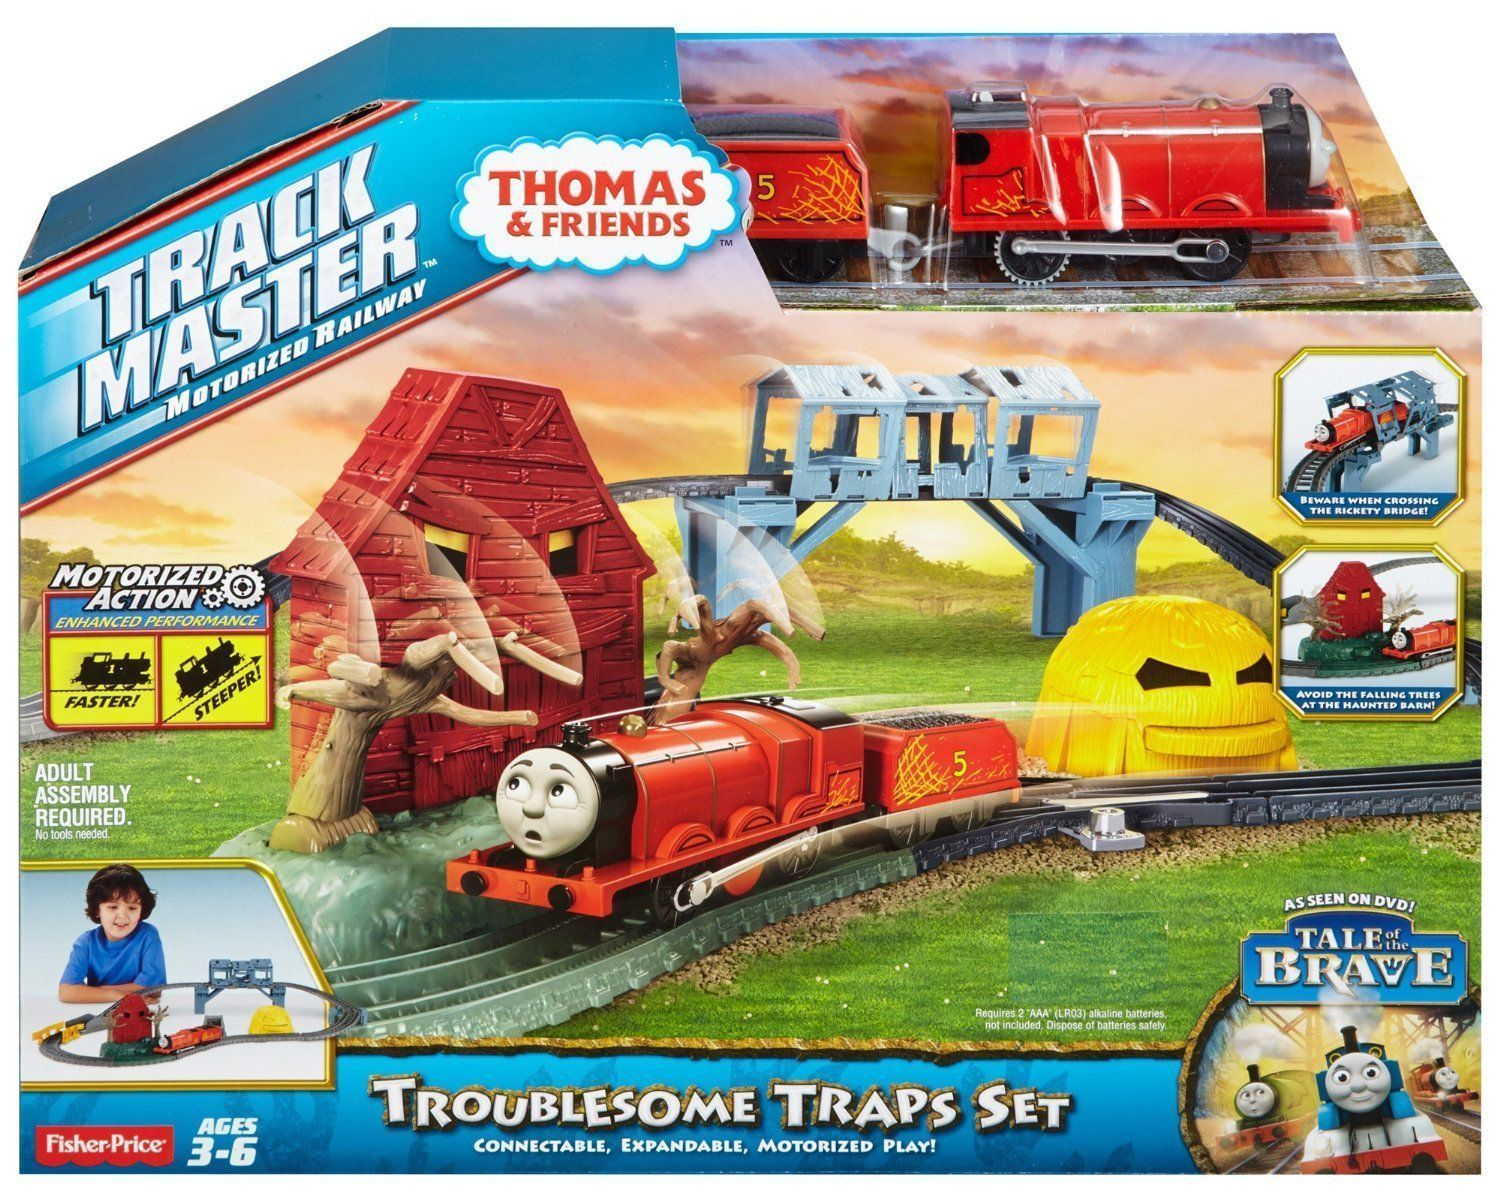 Thomas & Friends Trackmaster Motorized Railway - Troublesome ...